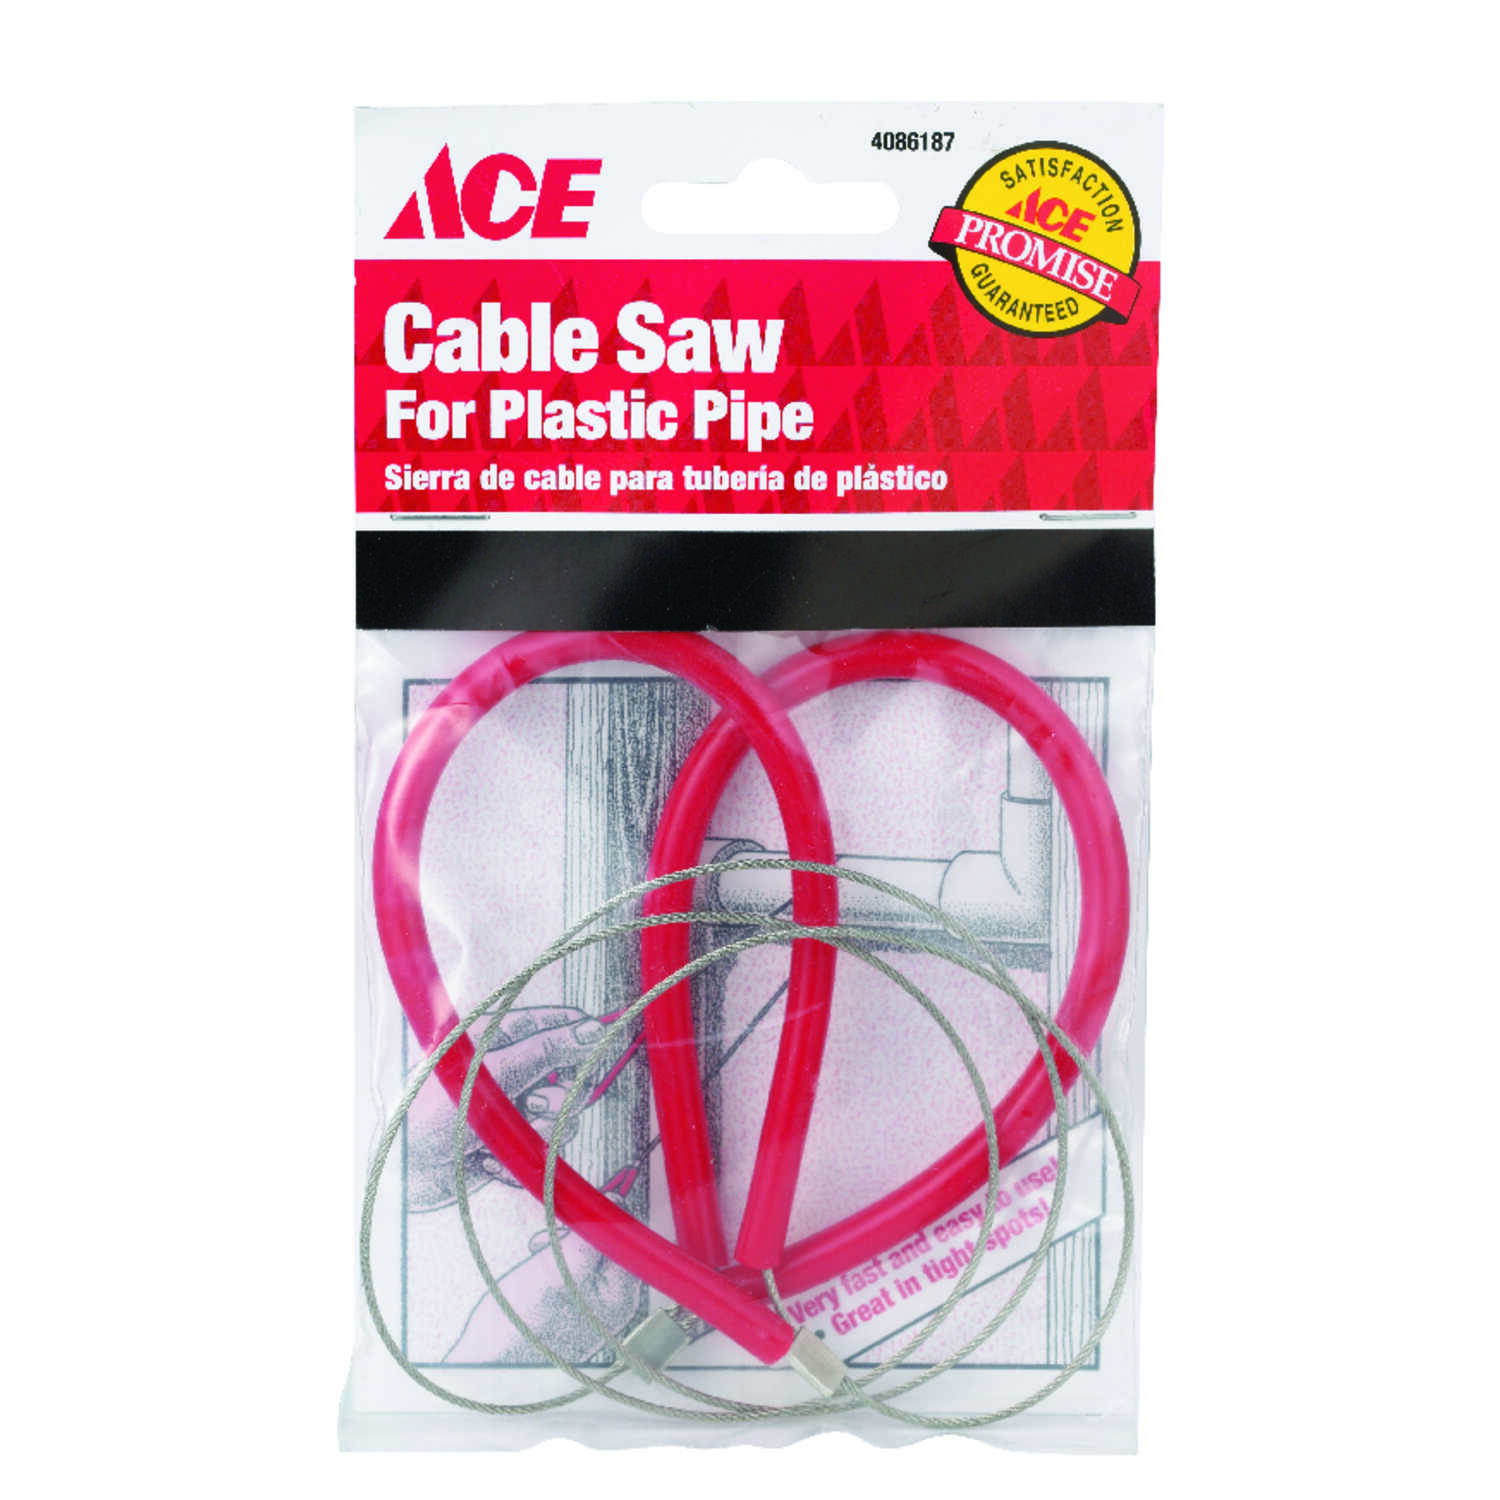 Ace  Cable Saw for Plastic Pipe